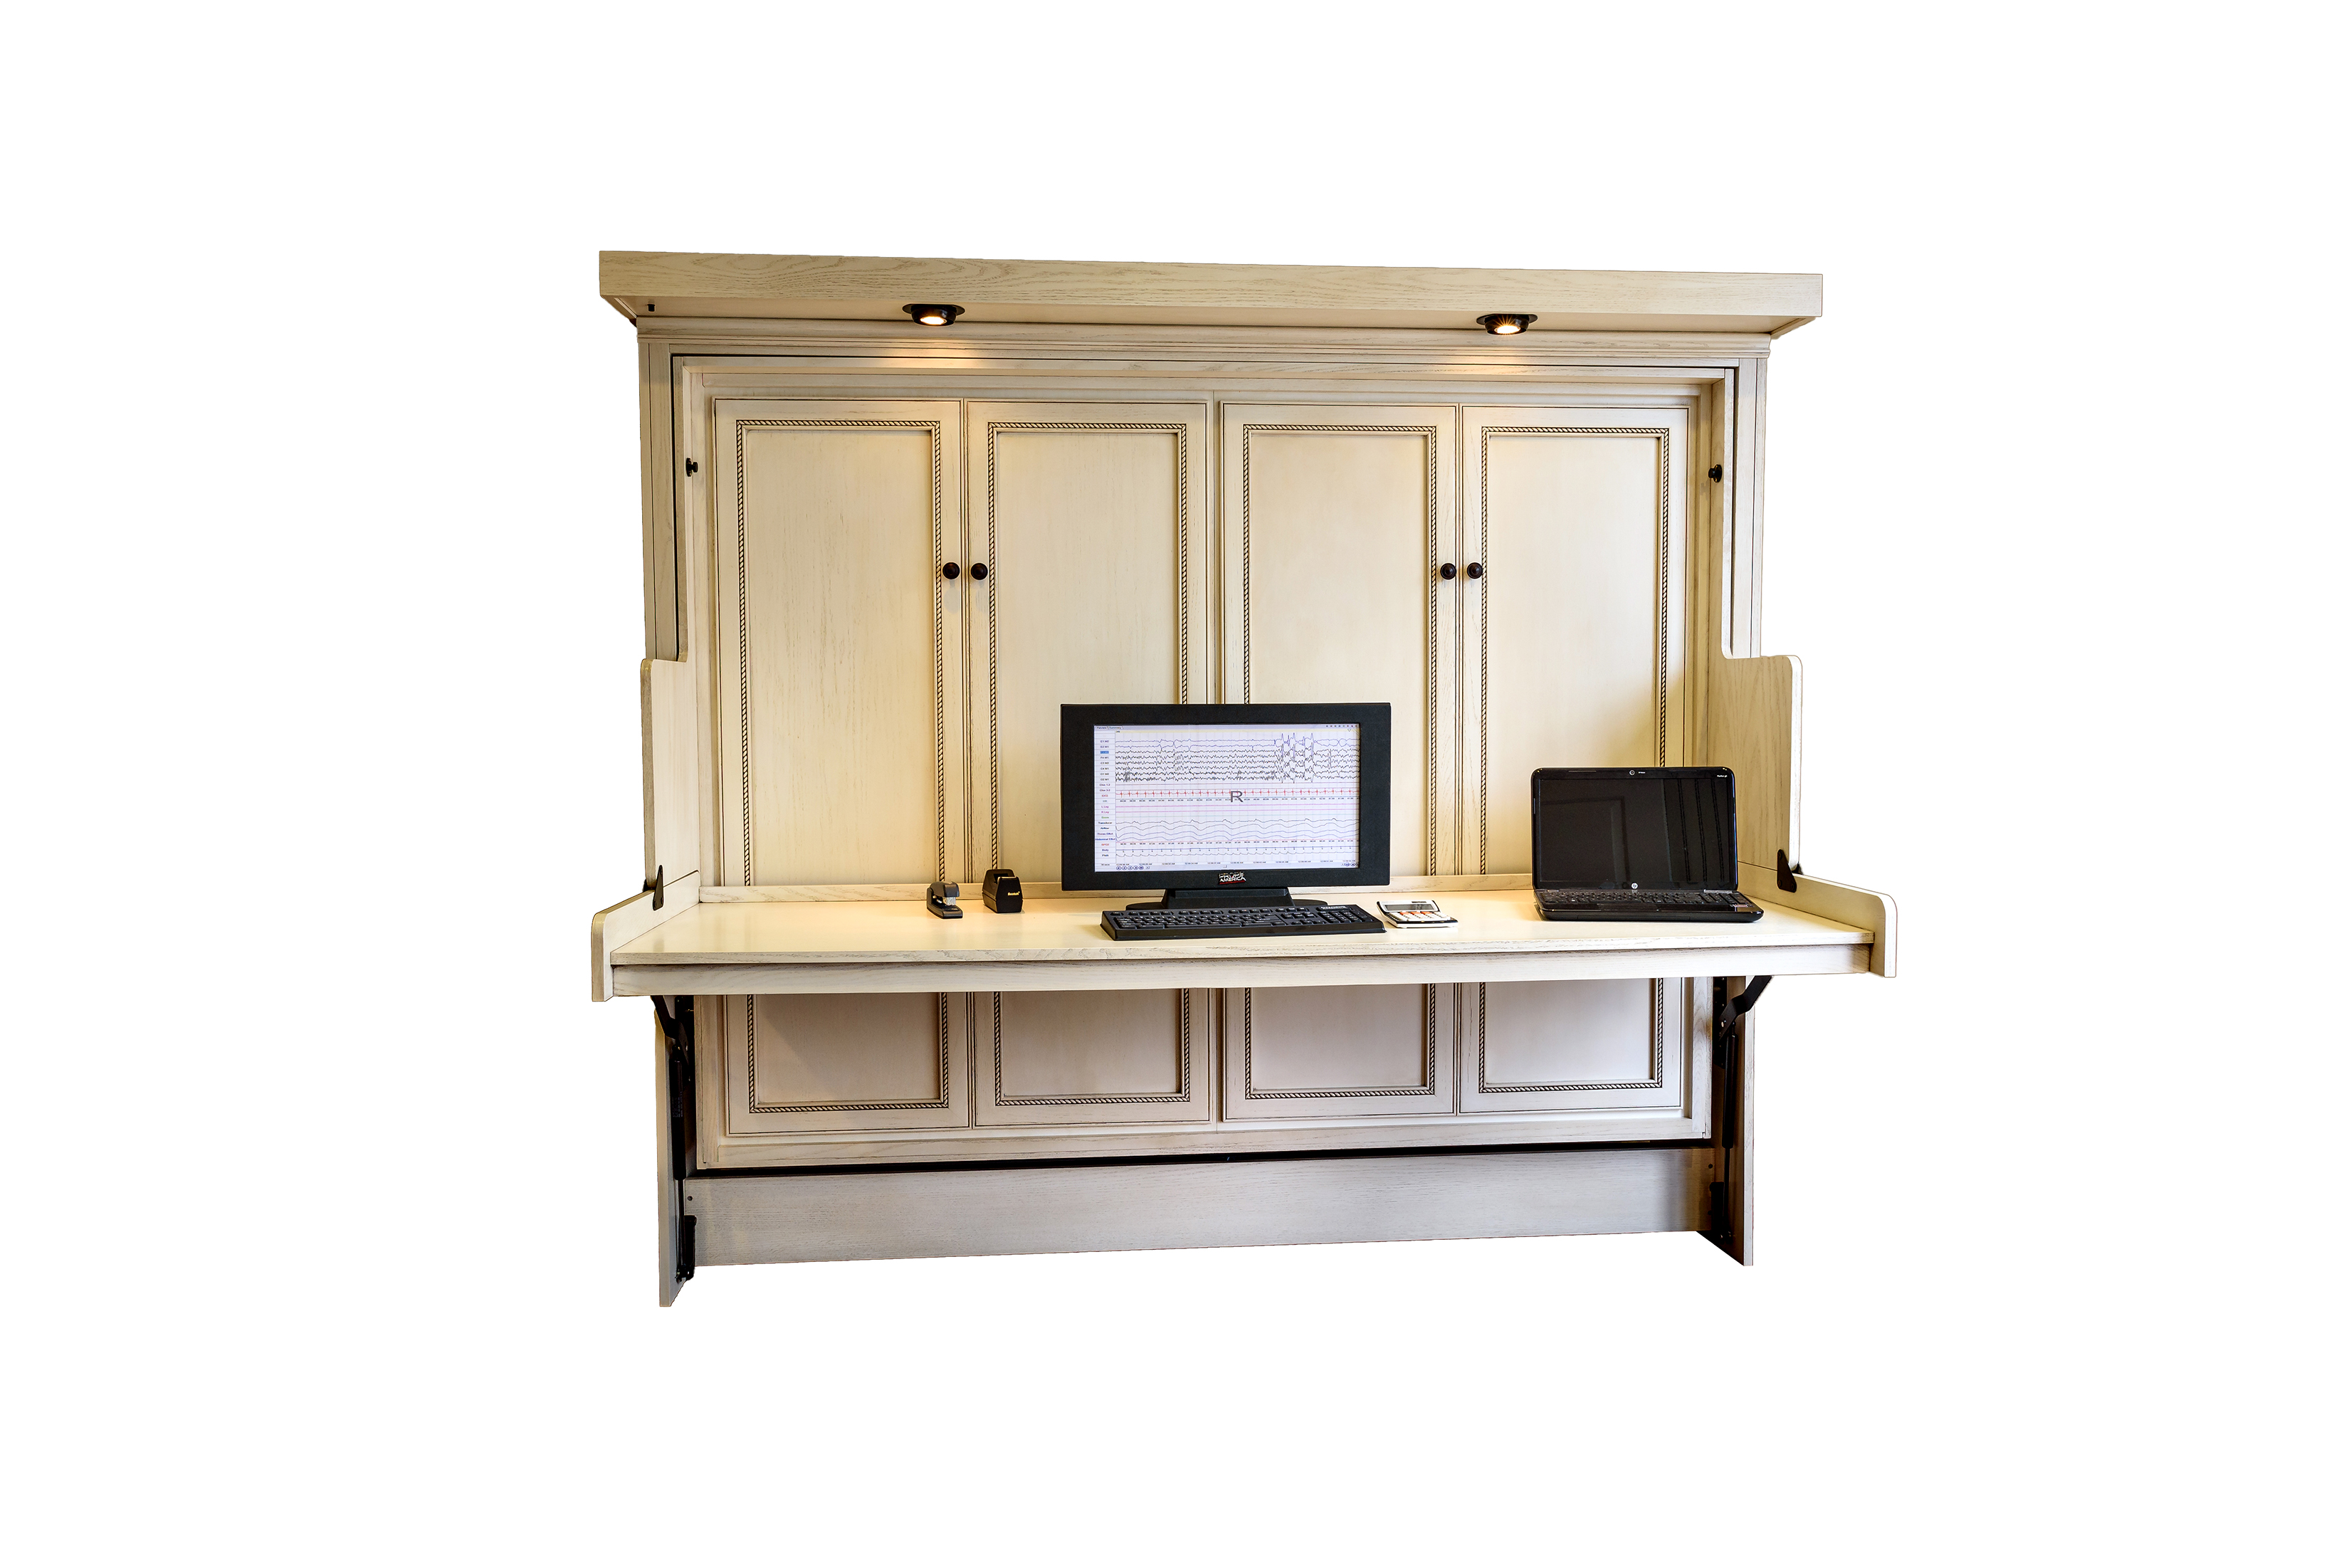 corner small desk lockable deskf mini multi techni cream hideaway solid mobili wood oak person monitor dual computer